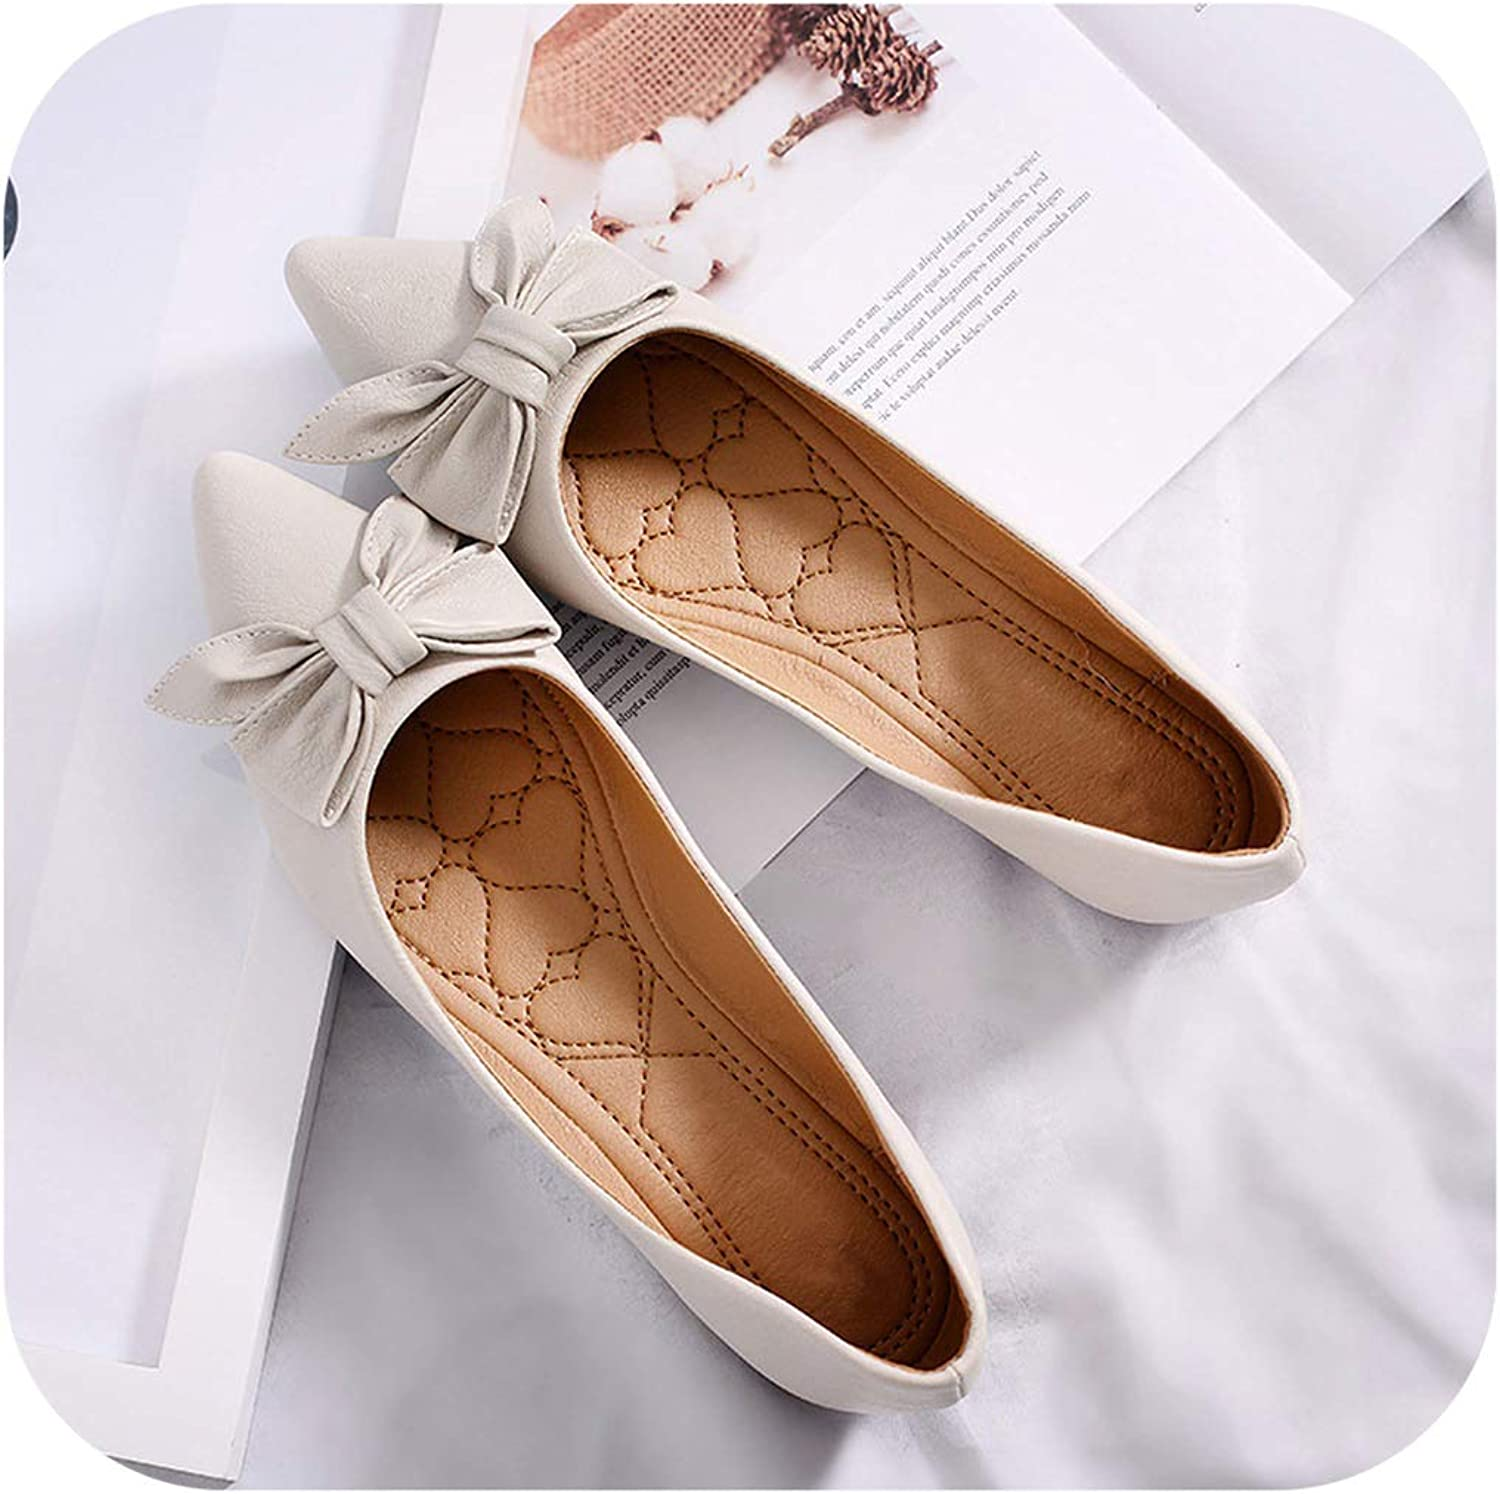 Fashion Boat shoes Women Soft Leather Casual shoes Pointed Toe Flats Office Ladies Brand Footwear Big Size